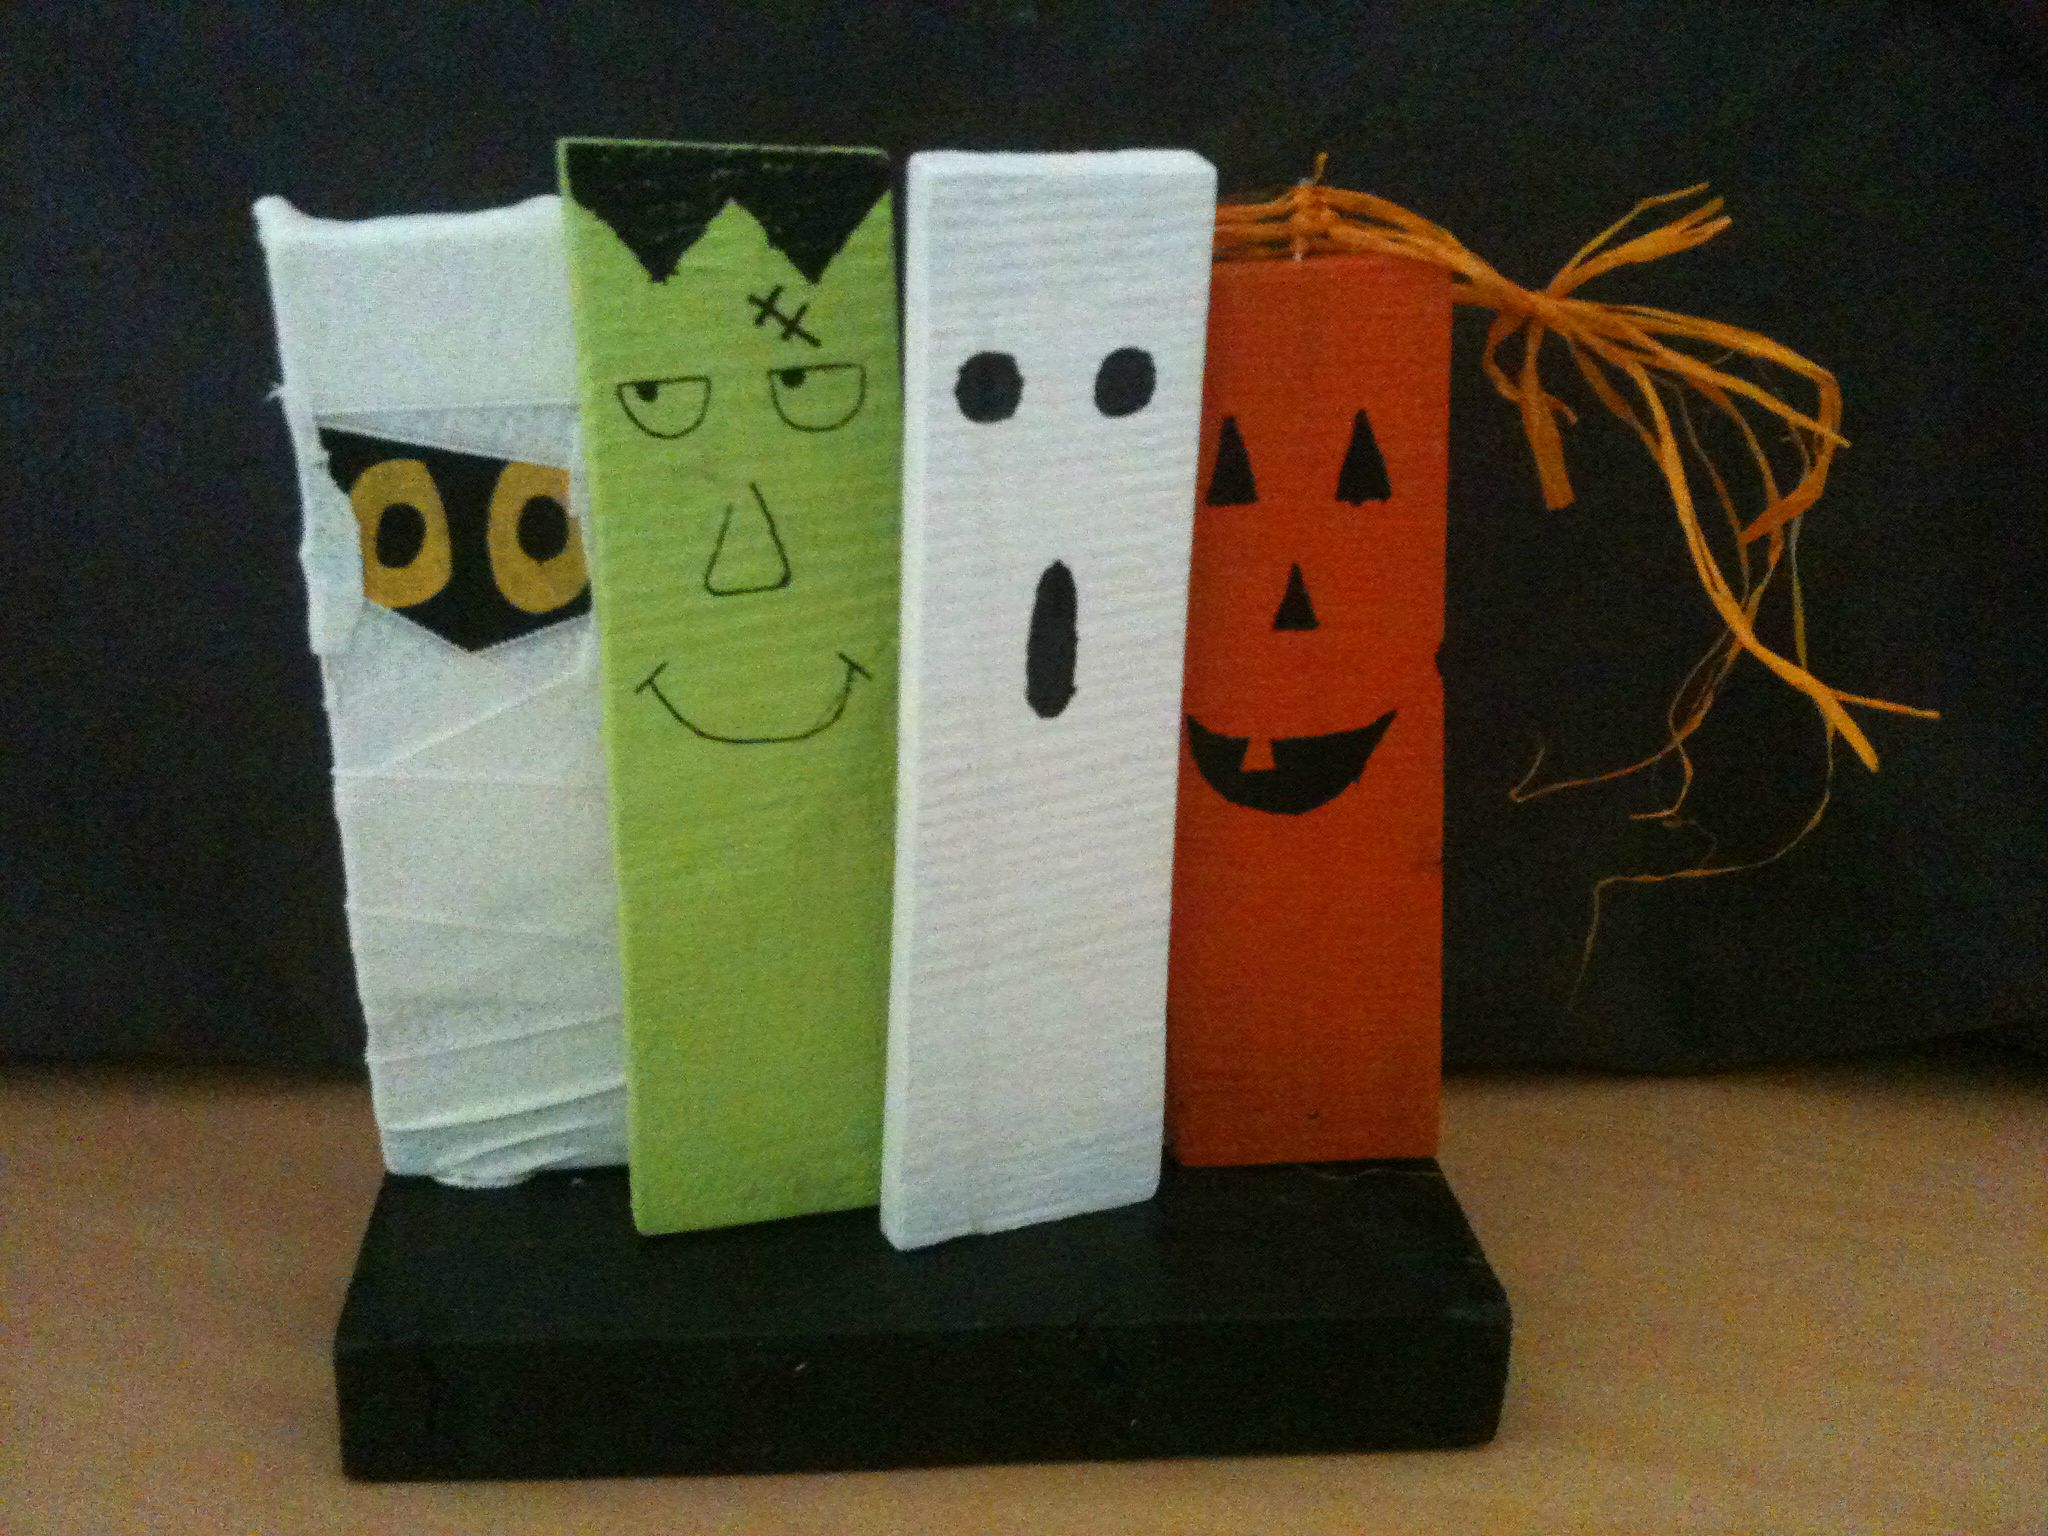 D co halloween photo de brico d co bois papier caillou ciseaux le blog - Deco facile halloween ...